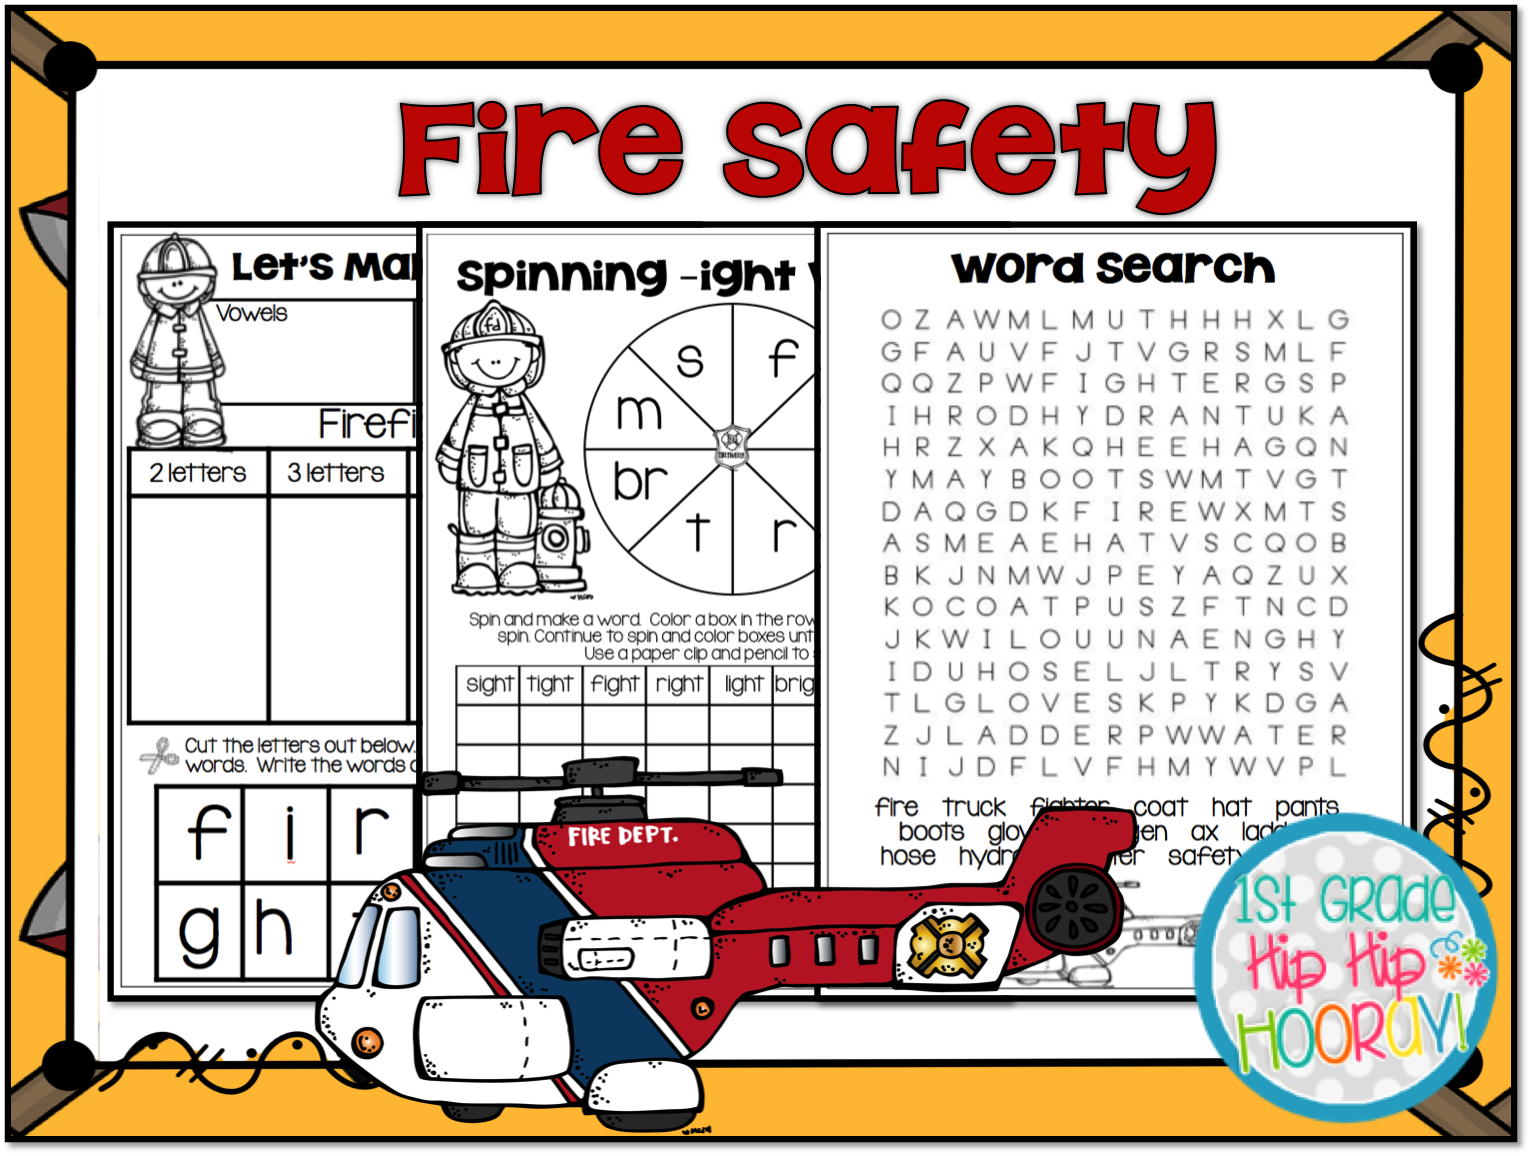 1st Grade Hip Hip Hooray October Is Fire Safety Month